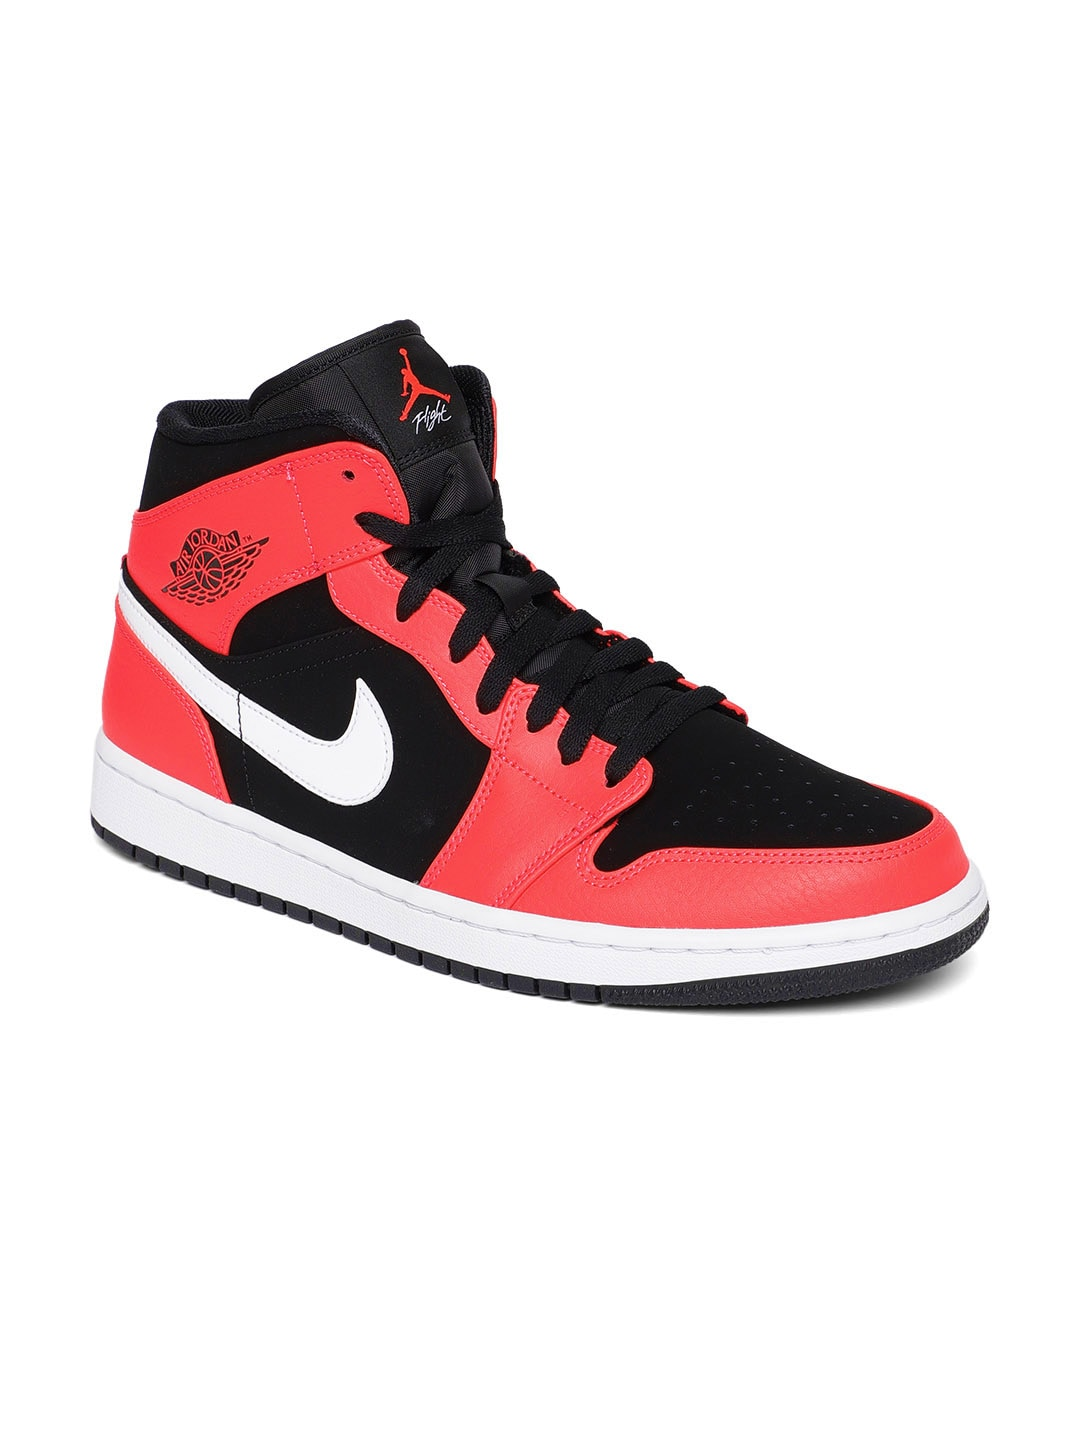 Nike Shoes - Buy Nike Shoes for Men   Women Online  e02ba4c23